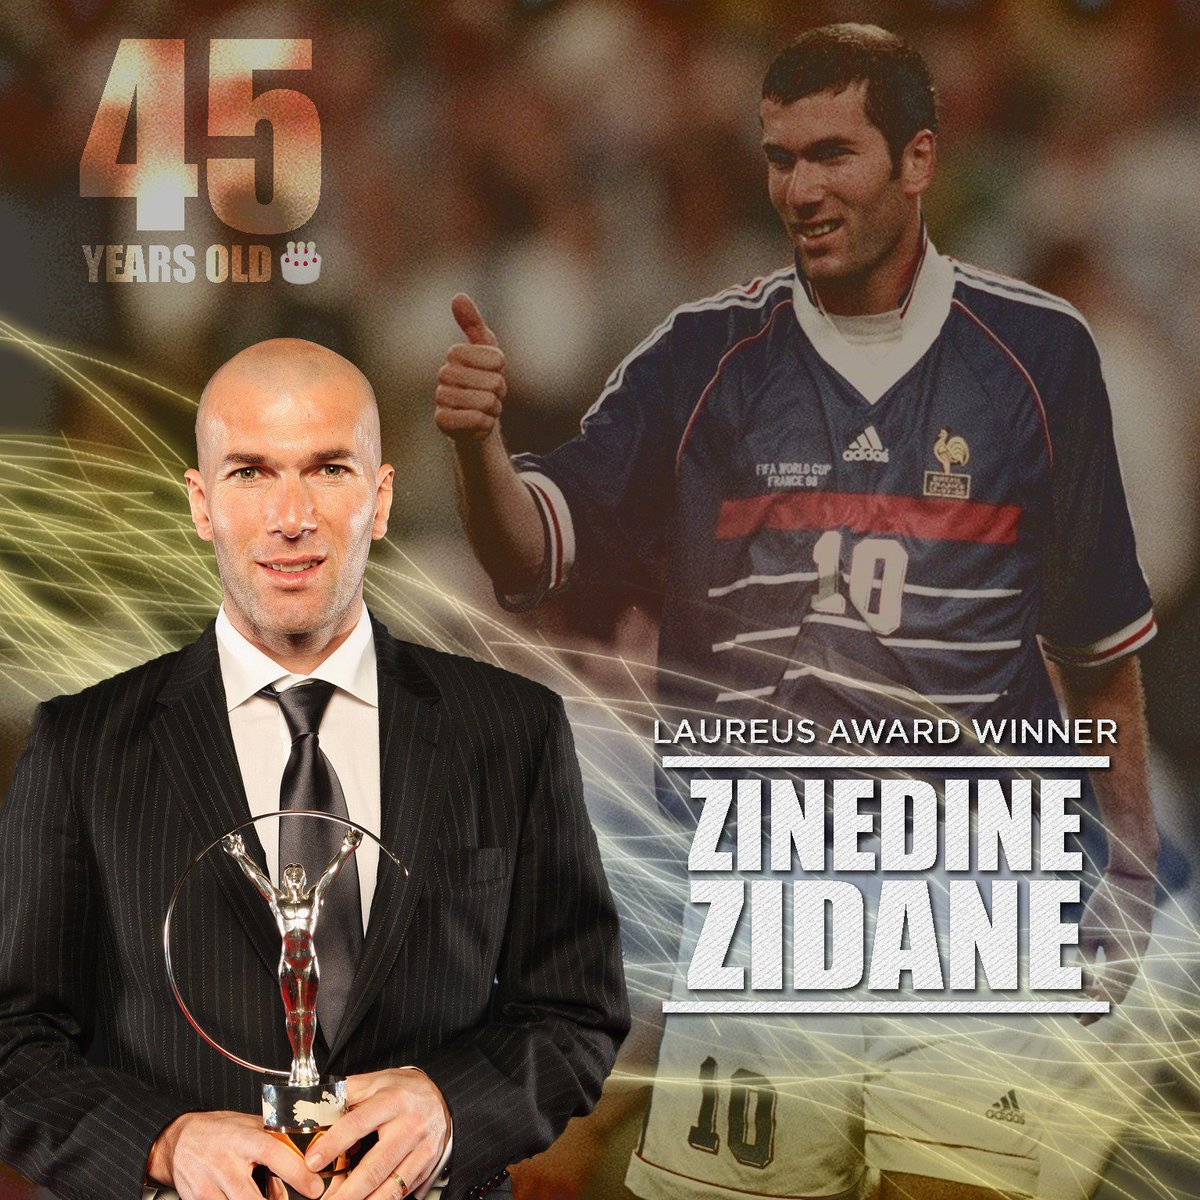 Happy birthday to one of the all-time greats! ⚽️🎉🎊🎁🎈#Zizou https://t.c...